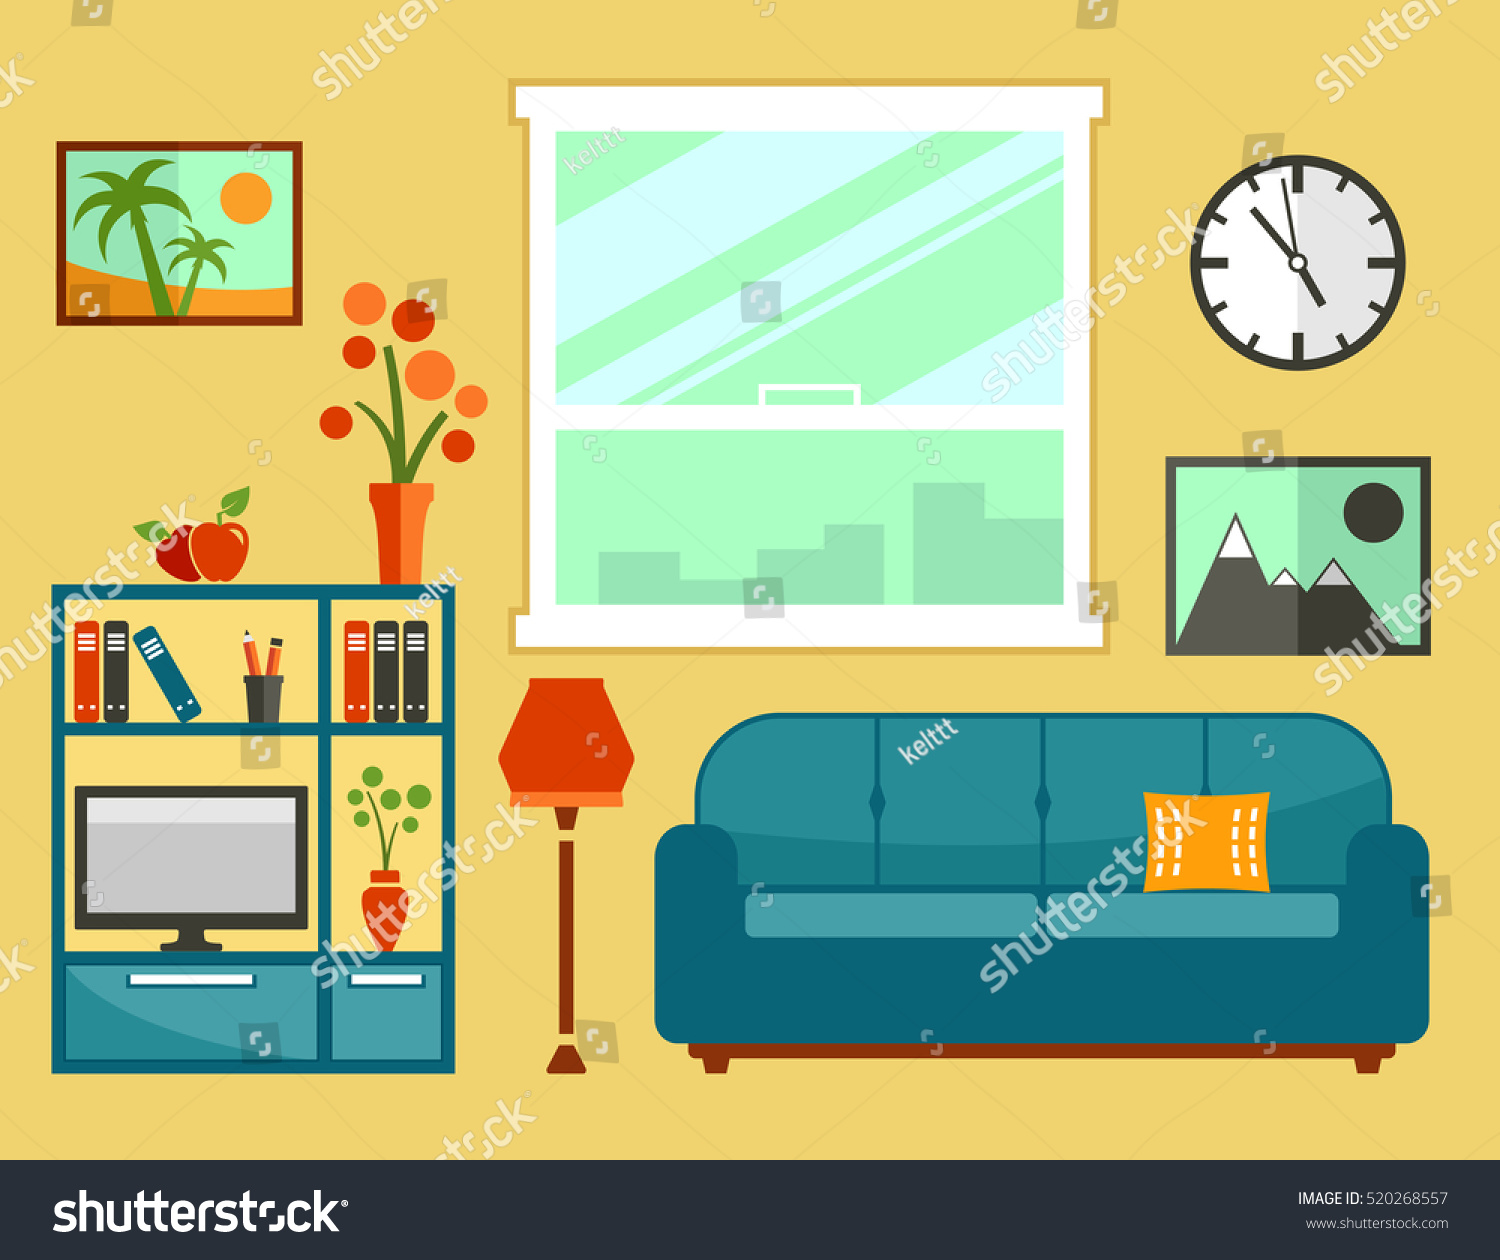 apartment room clipart. living room interior with flat furniture apartment set for cozy furnishing home clipart e